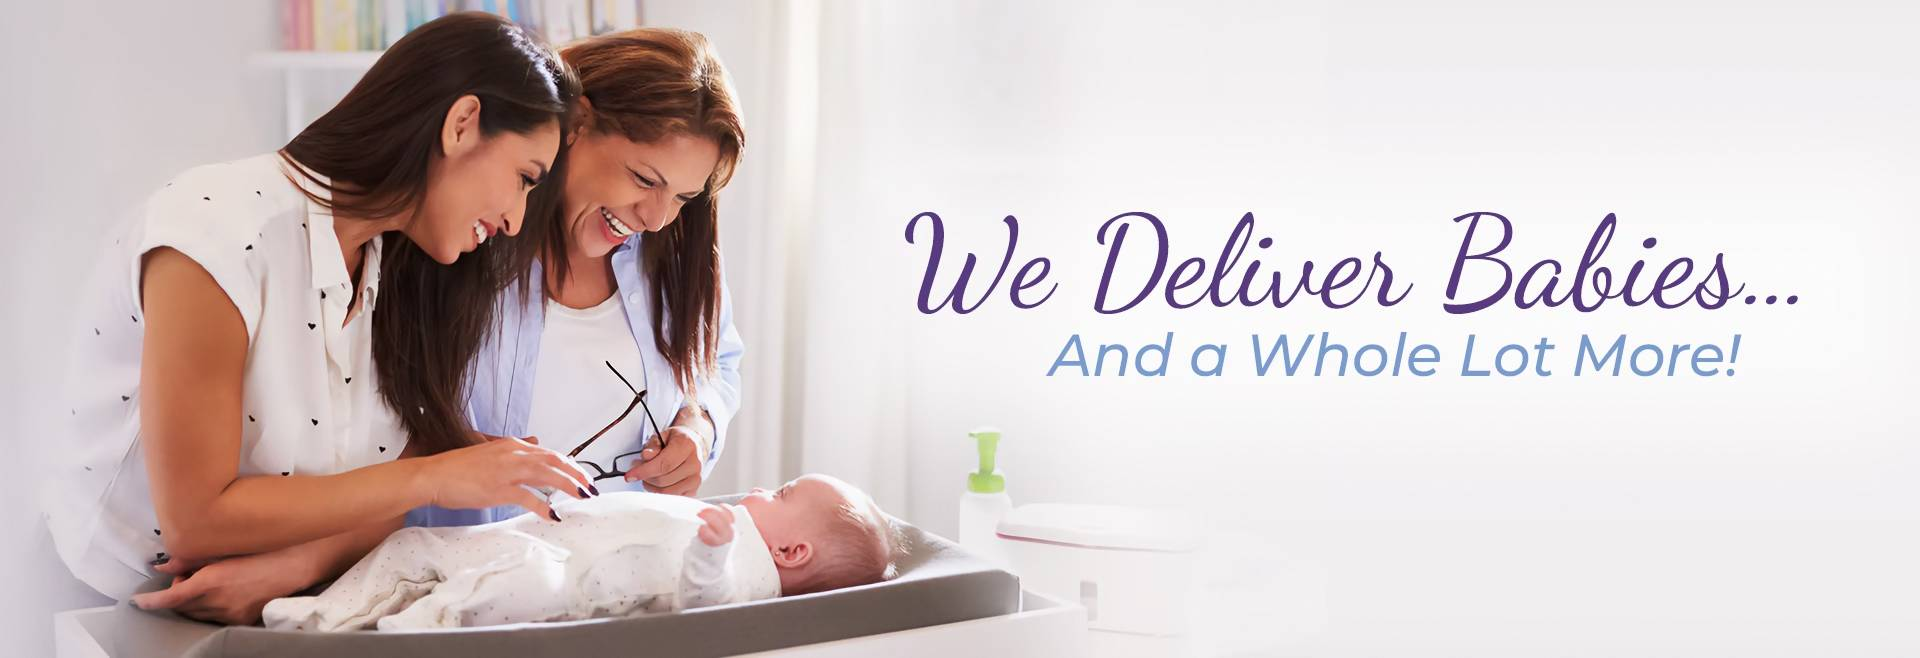 We Deliver Babies... and a whole lot more!